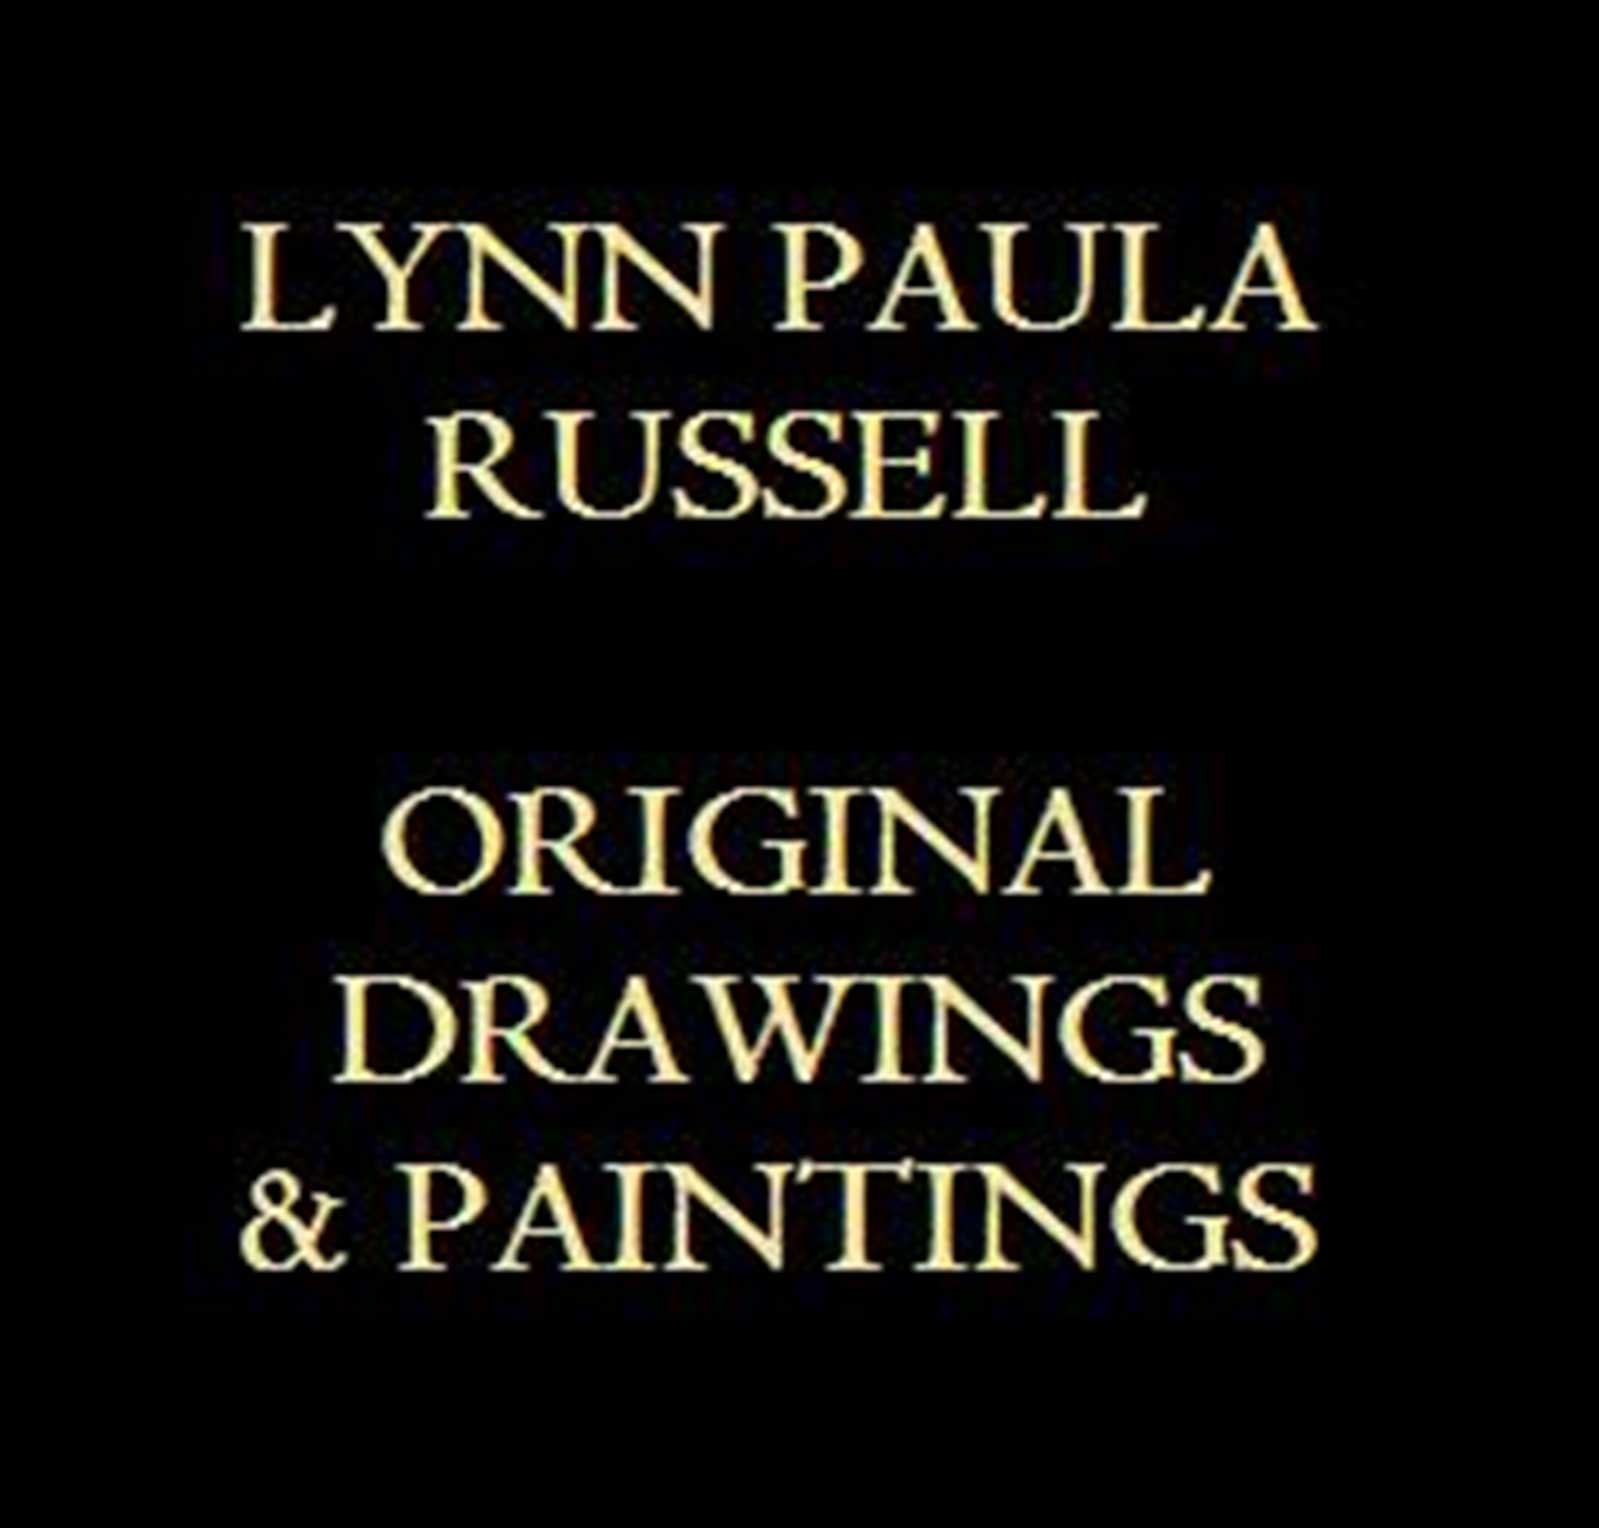 Talusman Fine Art LYNN PAULA RUSSELL - WE HAVE ORIGINAL EROTIC DRAWINGS and ILLUSTRATIONS FOR SALE - REQUEST MORE DETA